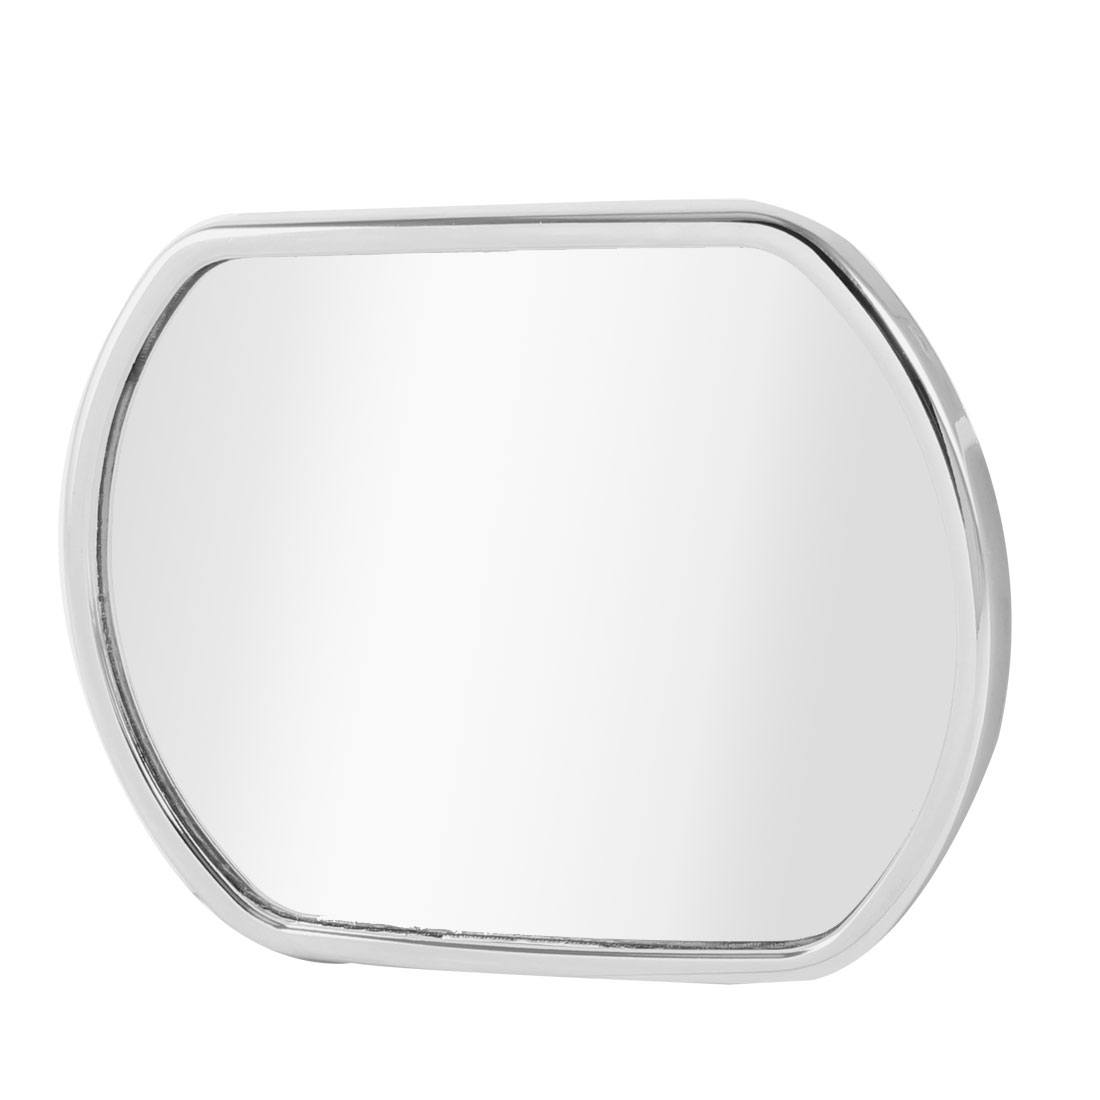 Rectangle Adhesive Car Wide Angle Convex Rear View Blind Spot Mirror Silver Tone